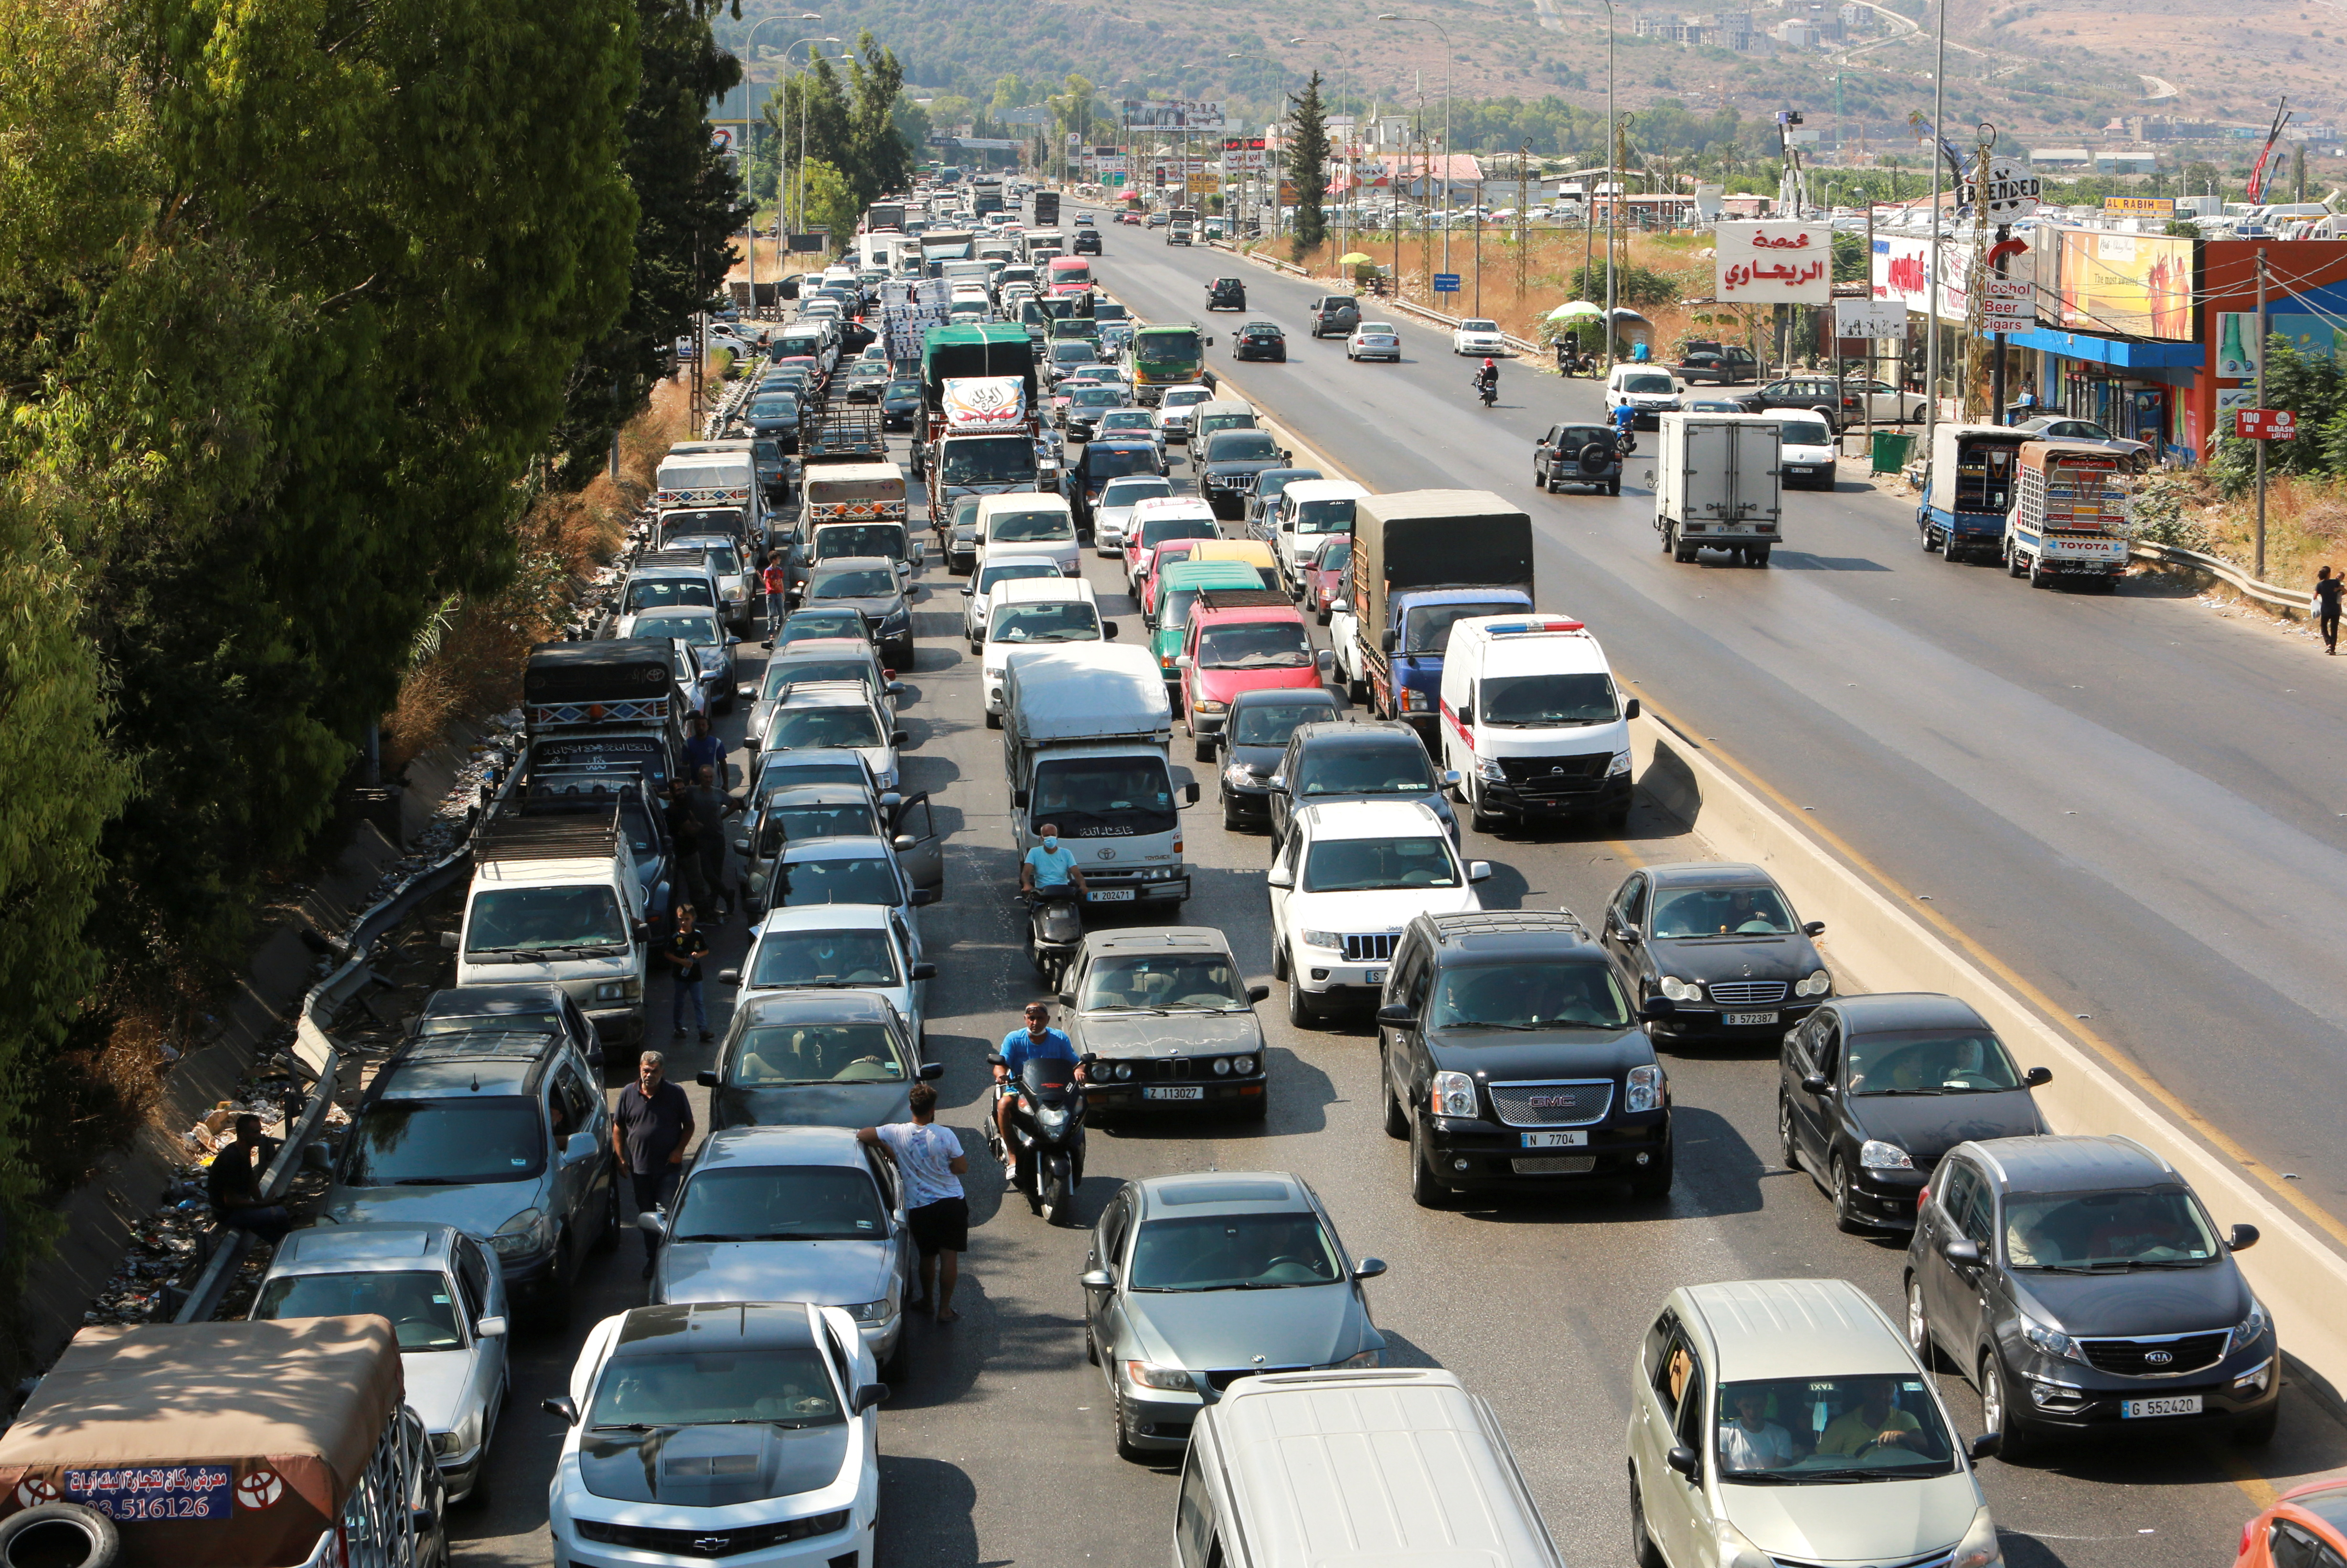 A view shows cars stuck in a traffic jam near a gas station in Jiyeh, Lebanon, August 13, 2021. REUTERS/Aziz Taher